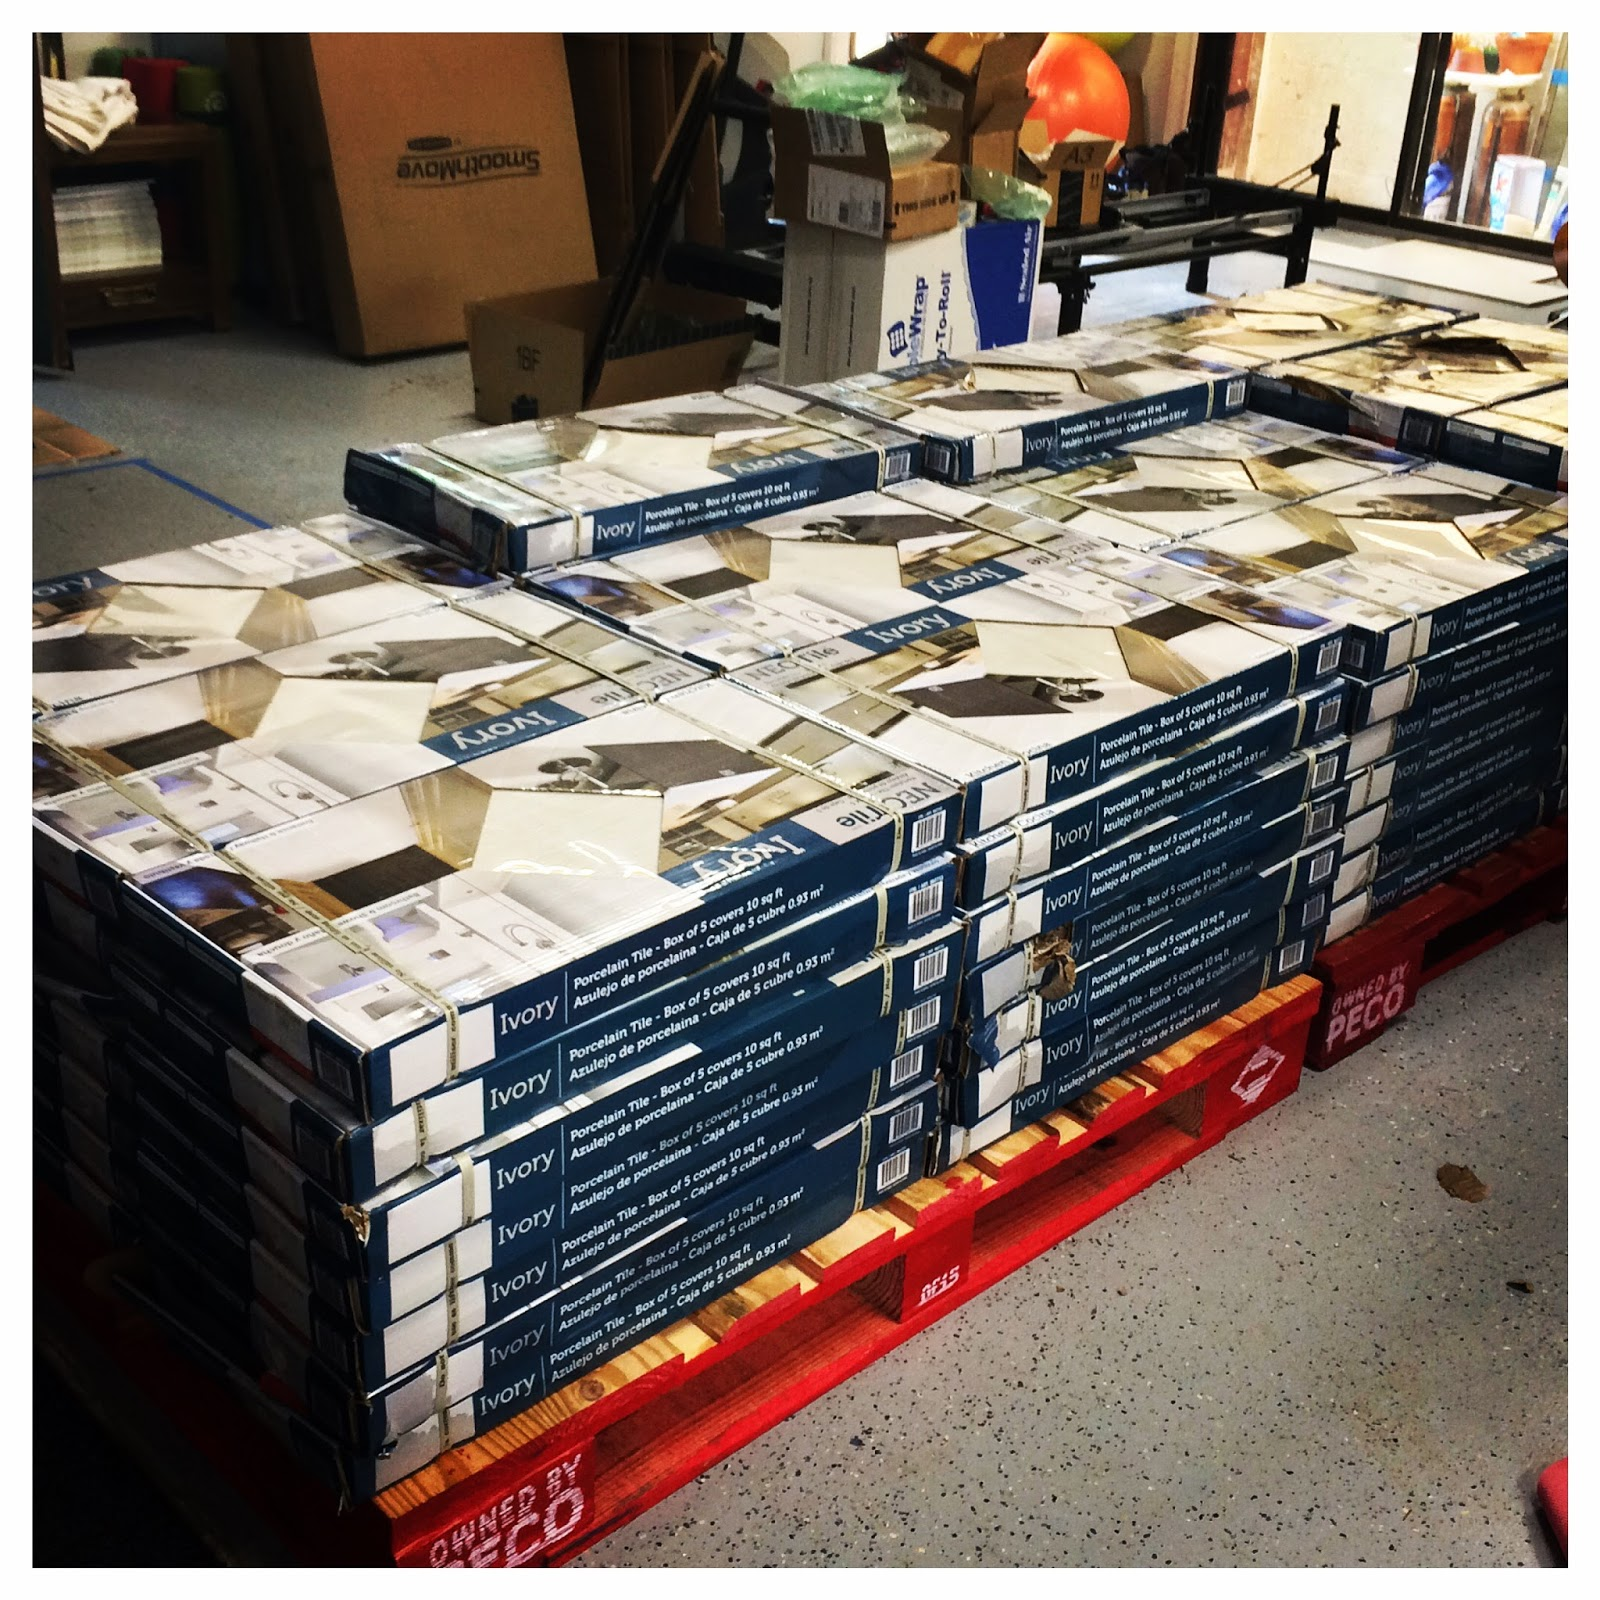 the Costco Connoisseur: Remodeling with Costco Teaser Photos